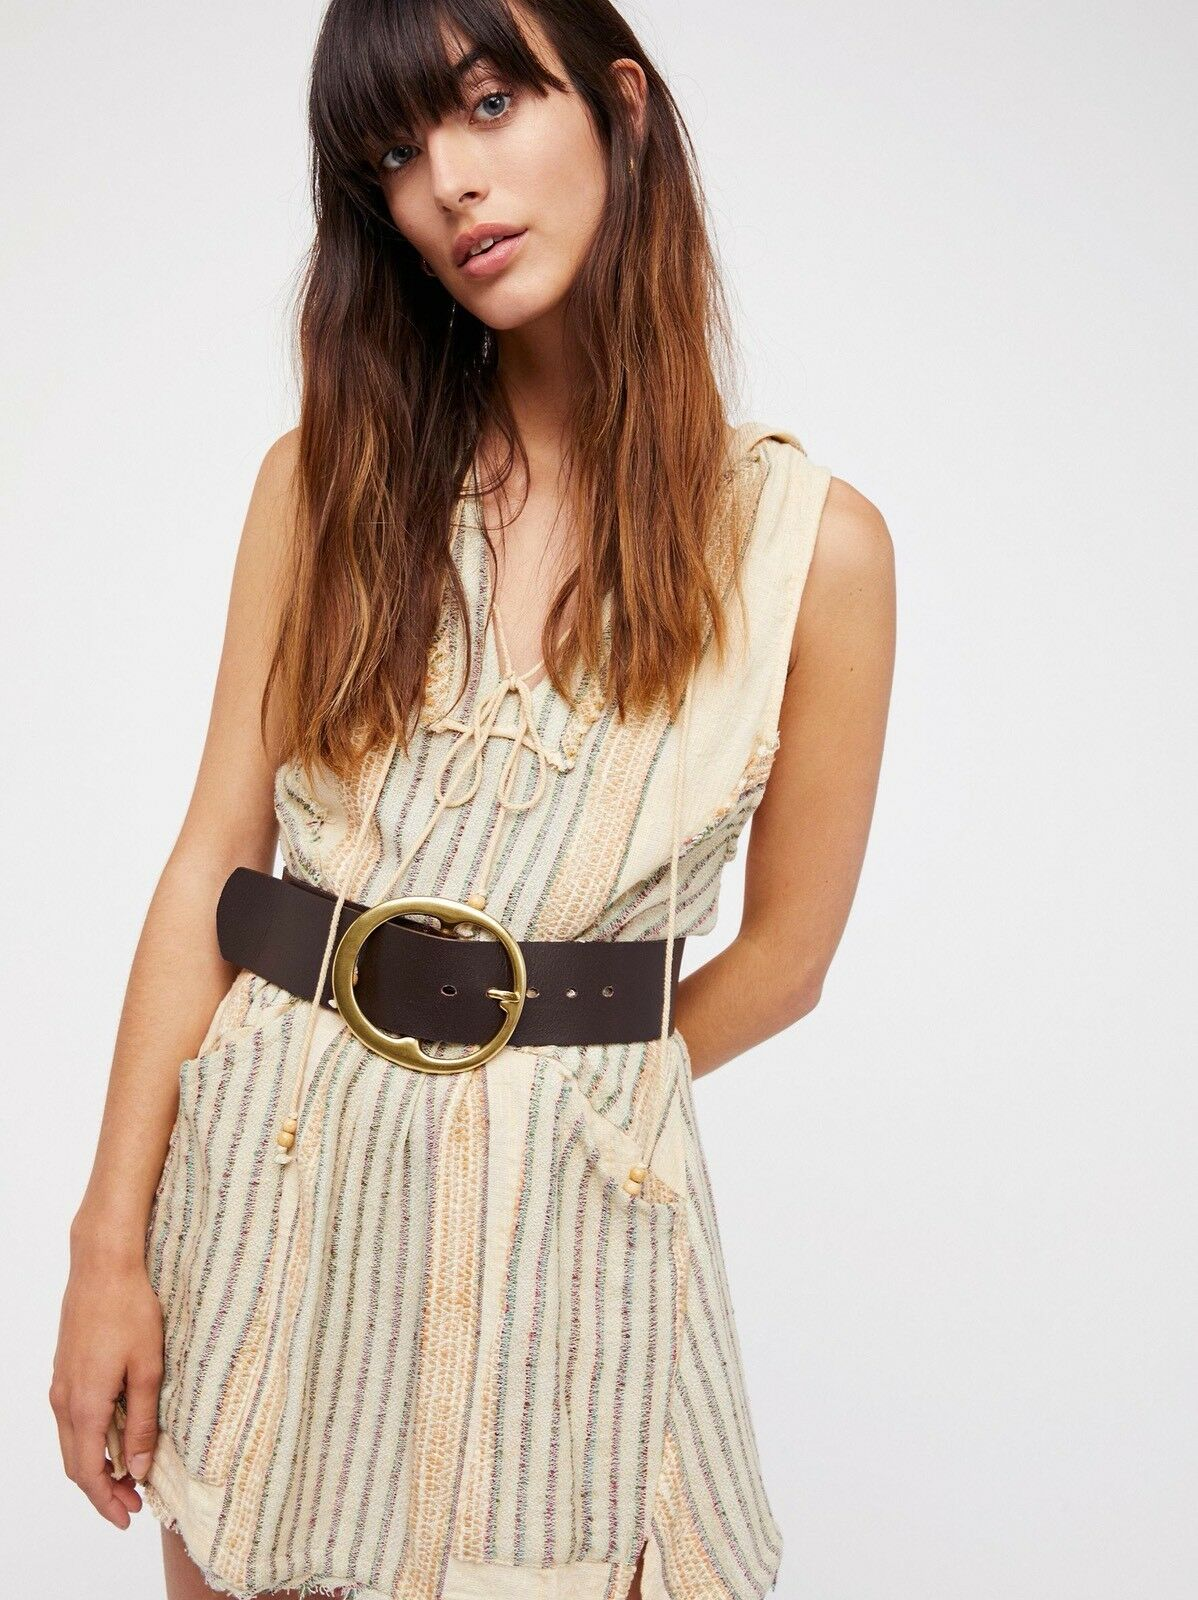 Free People All Right Now Mini Dress Size XS NEW MSRP